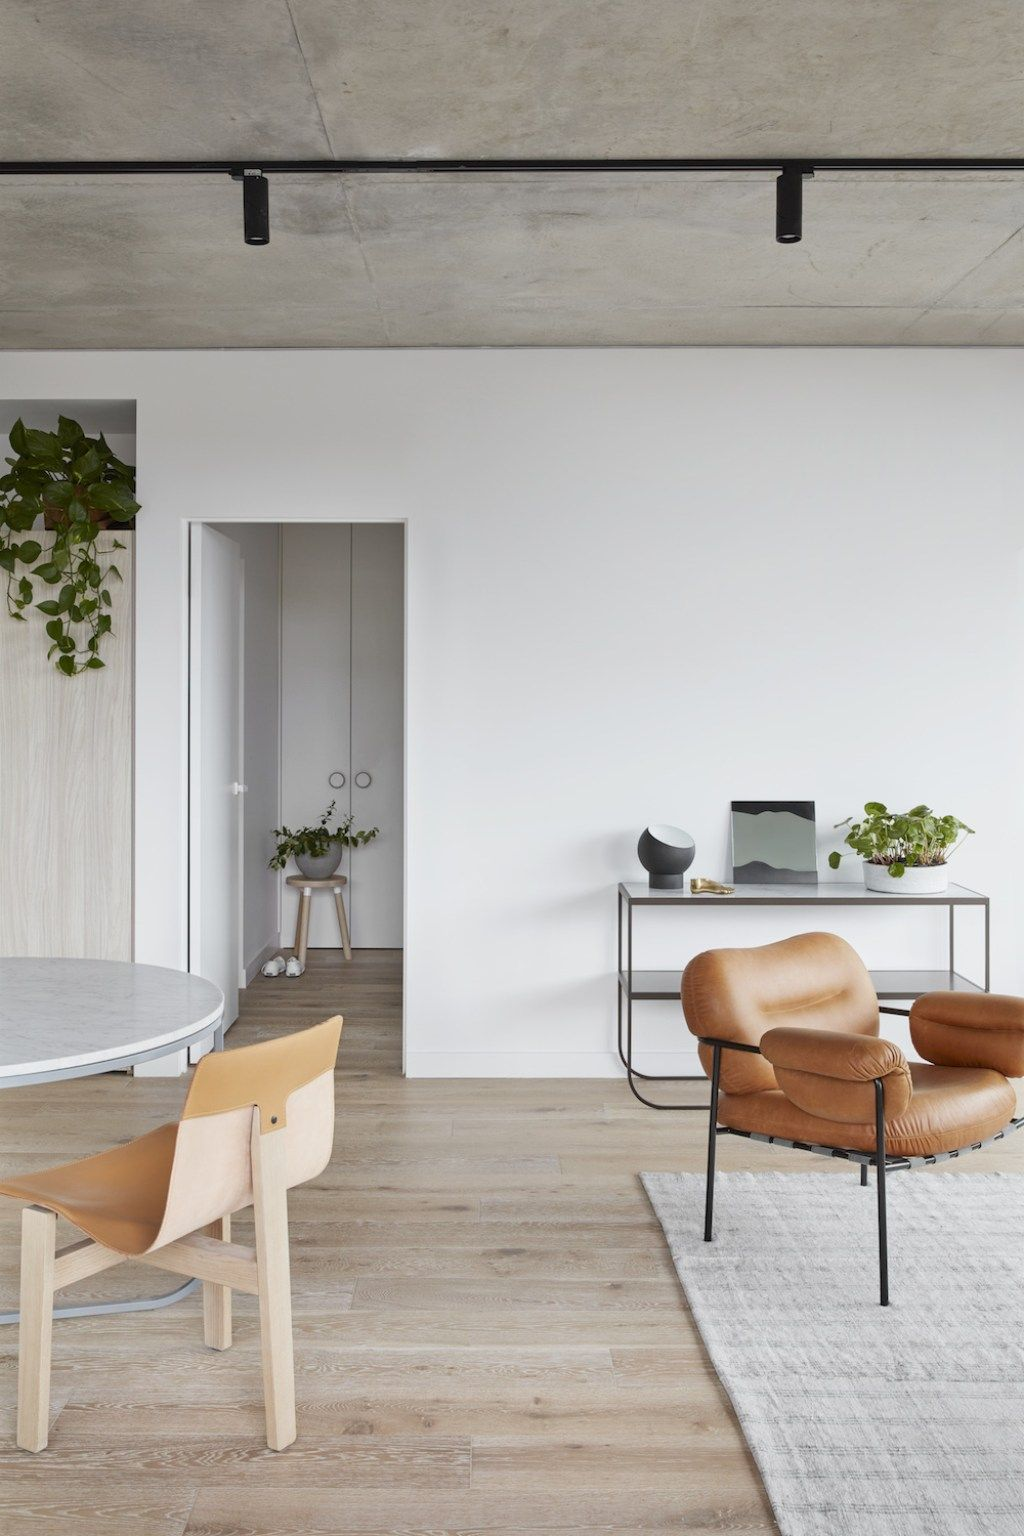 Inside Hawthorn S New Scandinavian Inspired Apartments Getinmyhome Apartment Inspiration Scandinavian Interior Design Scandinavian Inspired